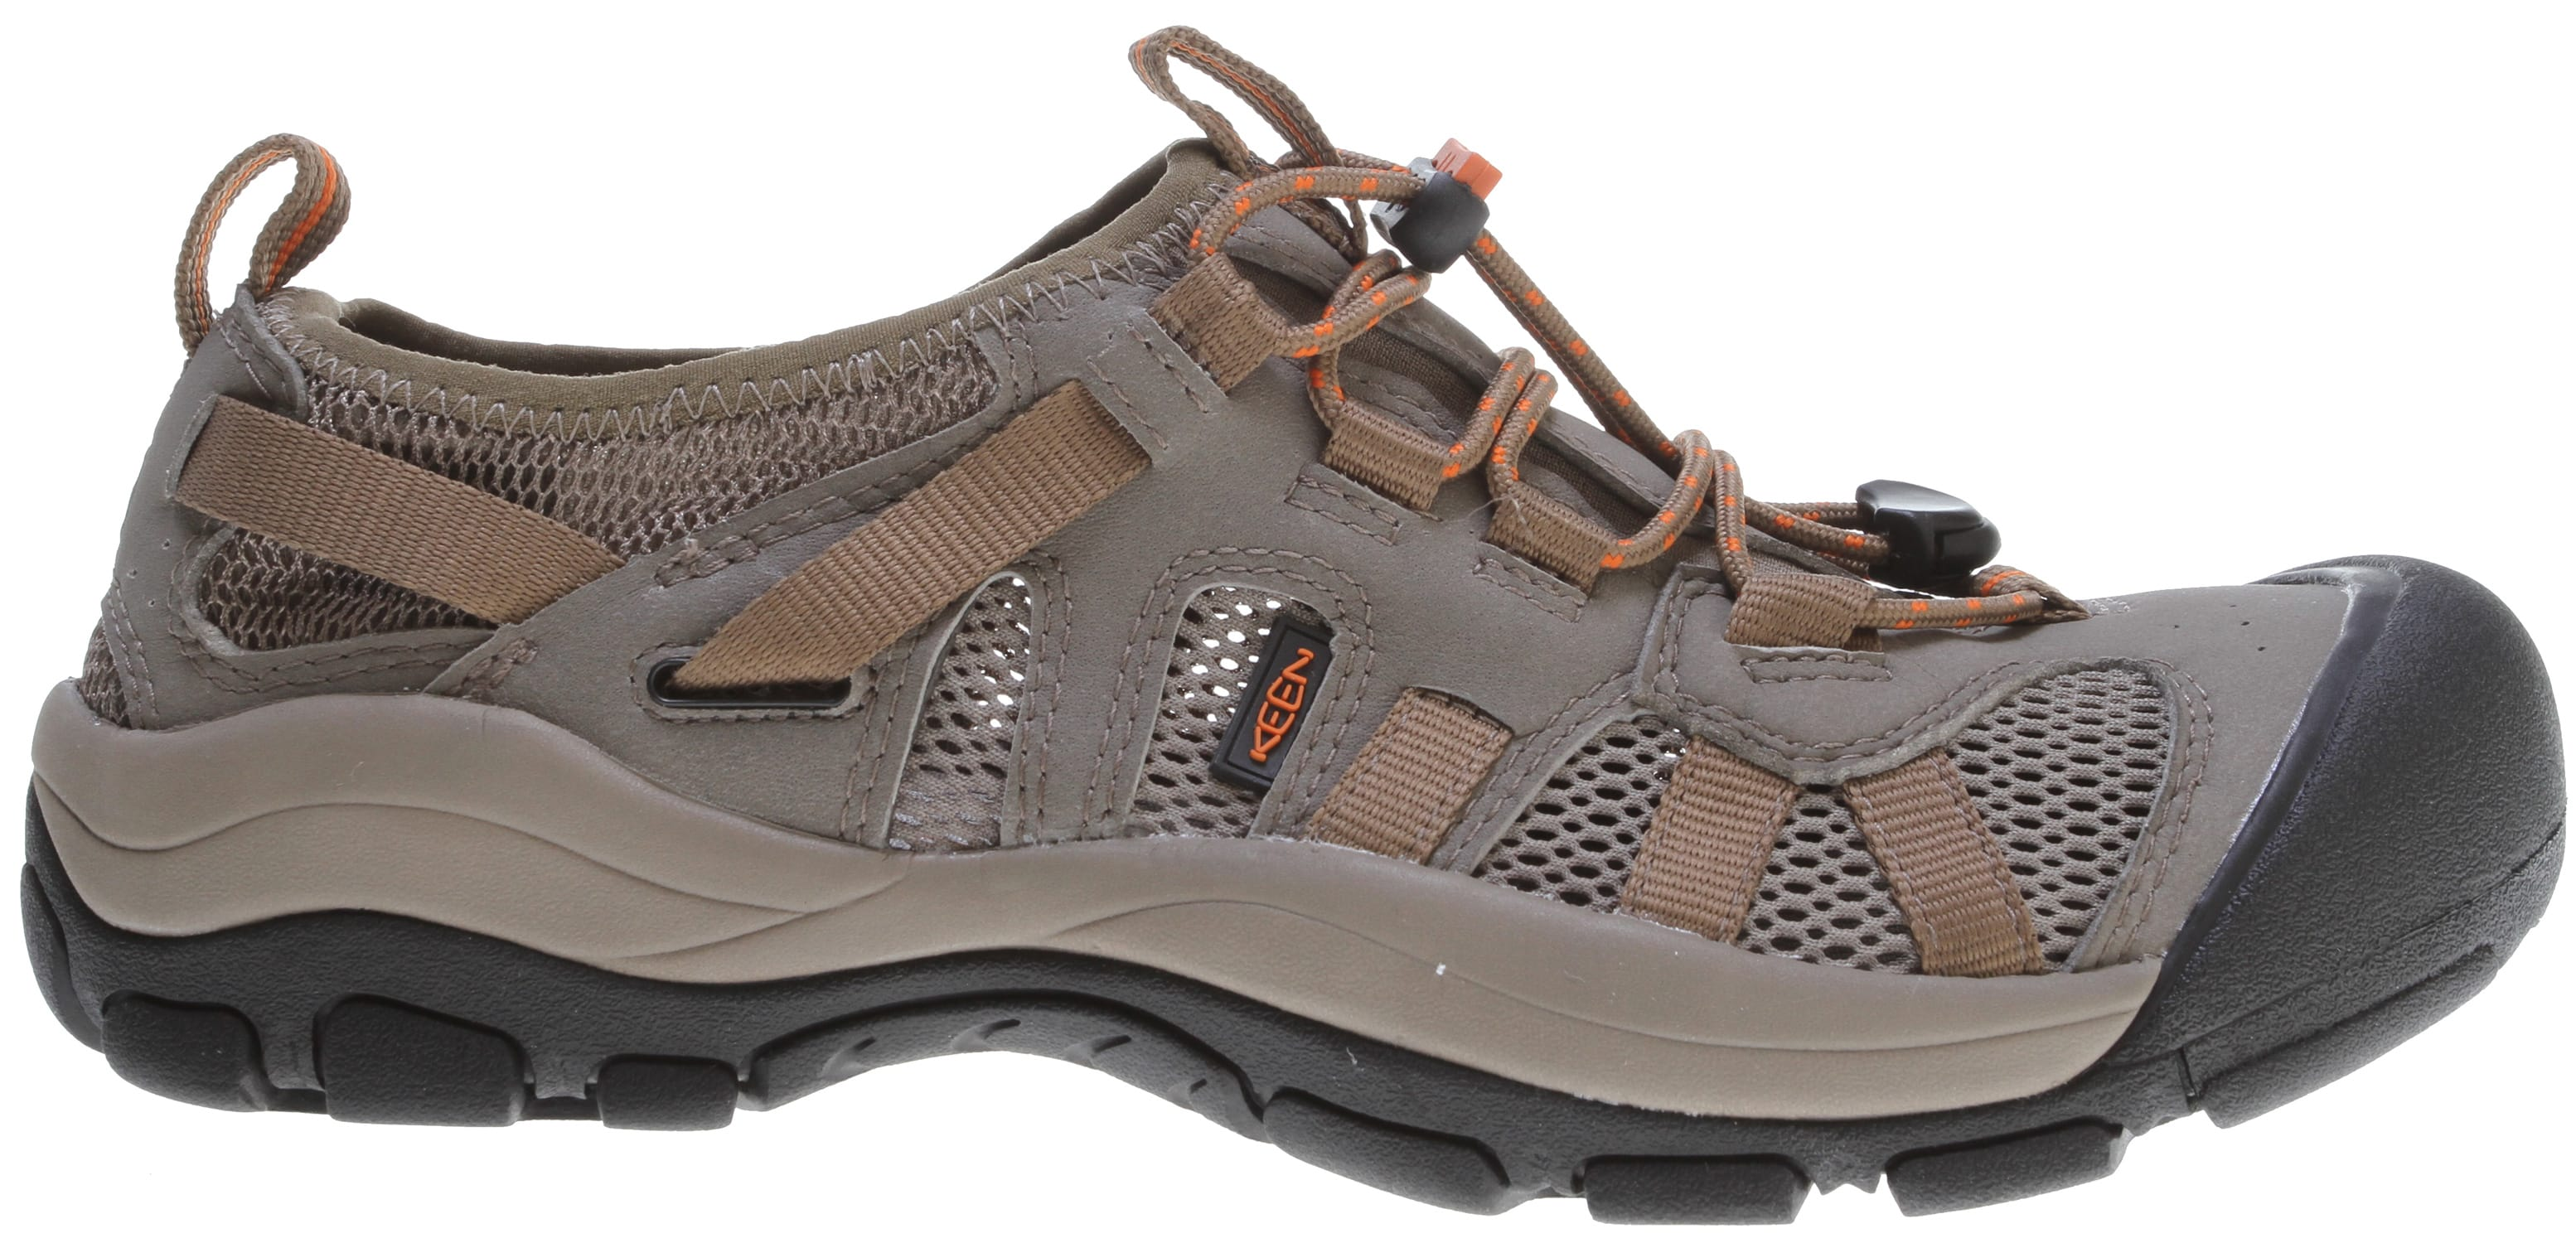 d2a97cb791c2 Keen Mckenzie Water Shoes - thumbnail 1